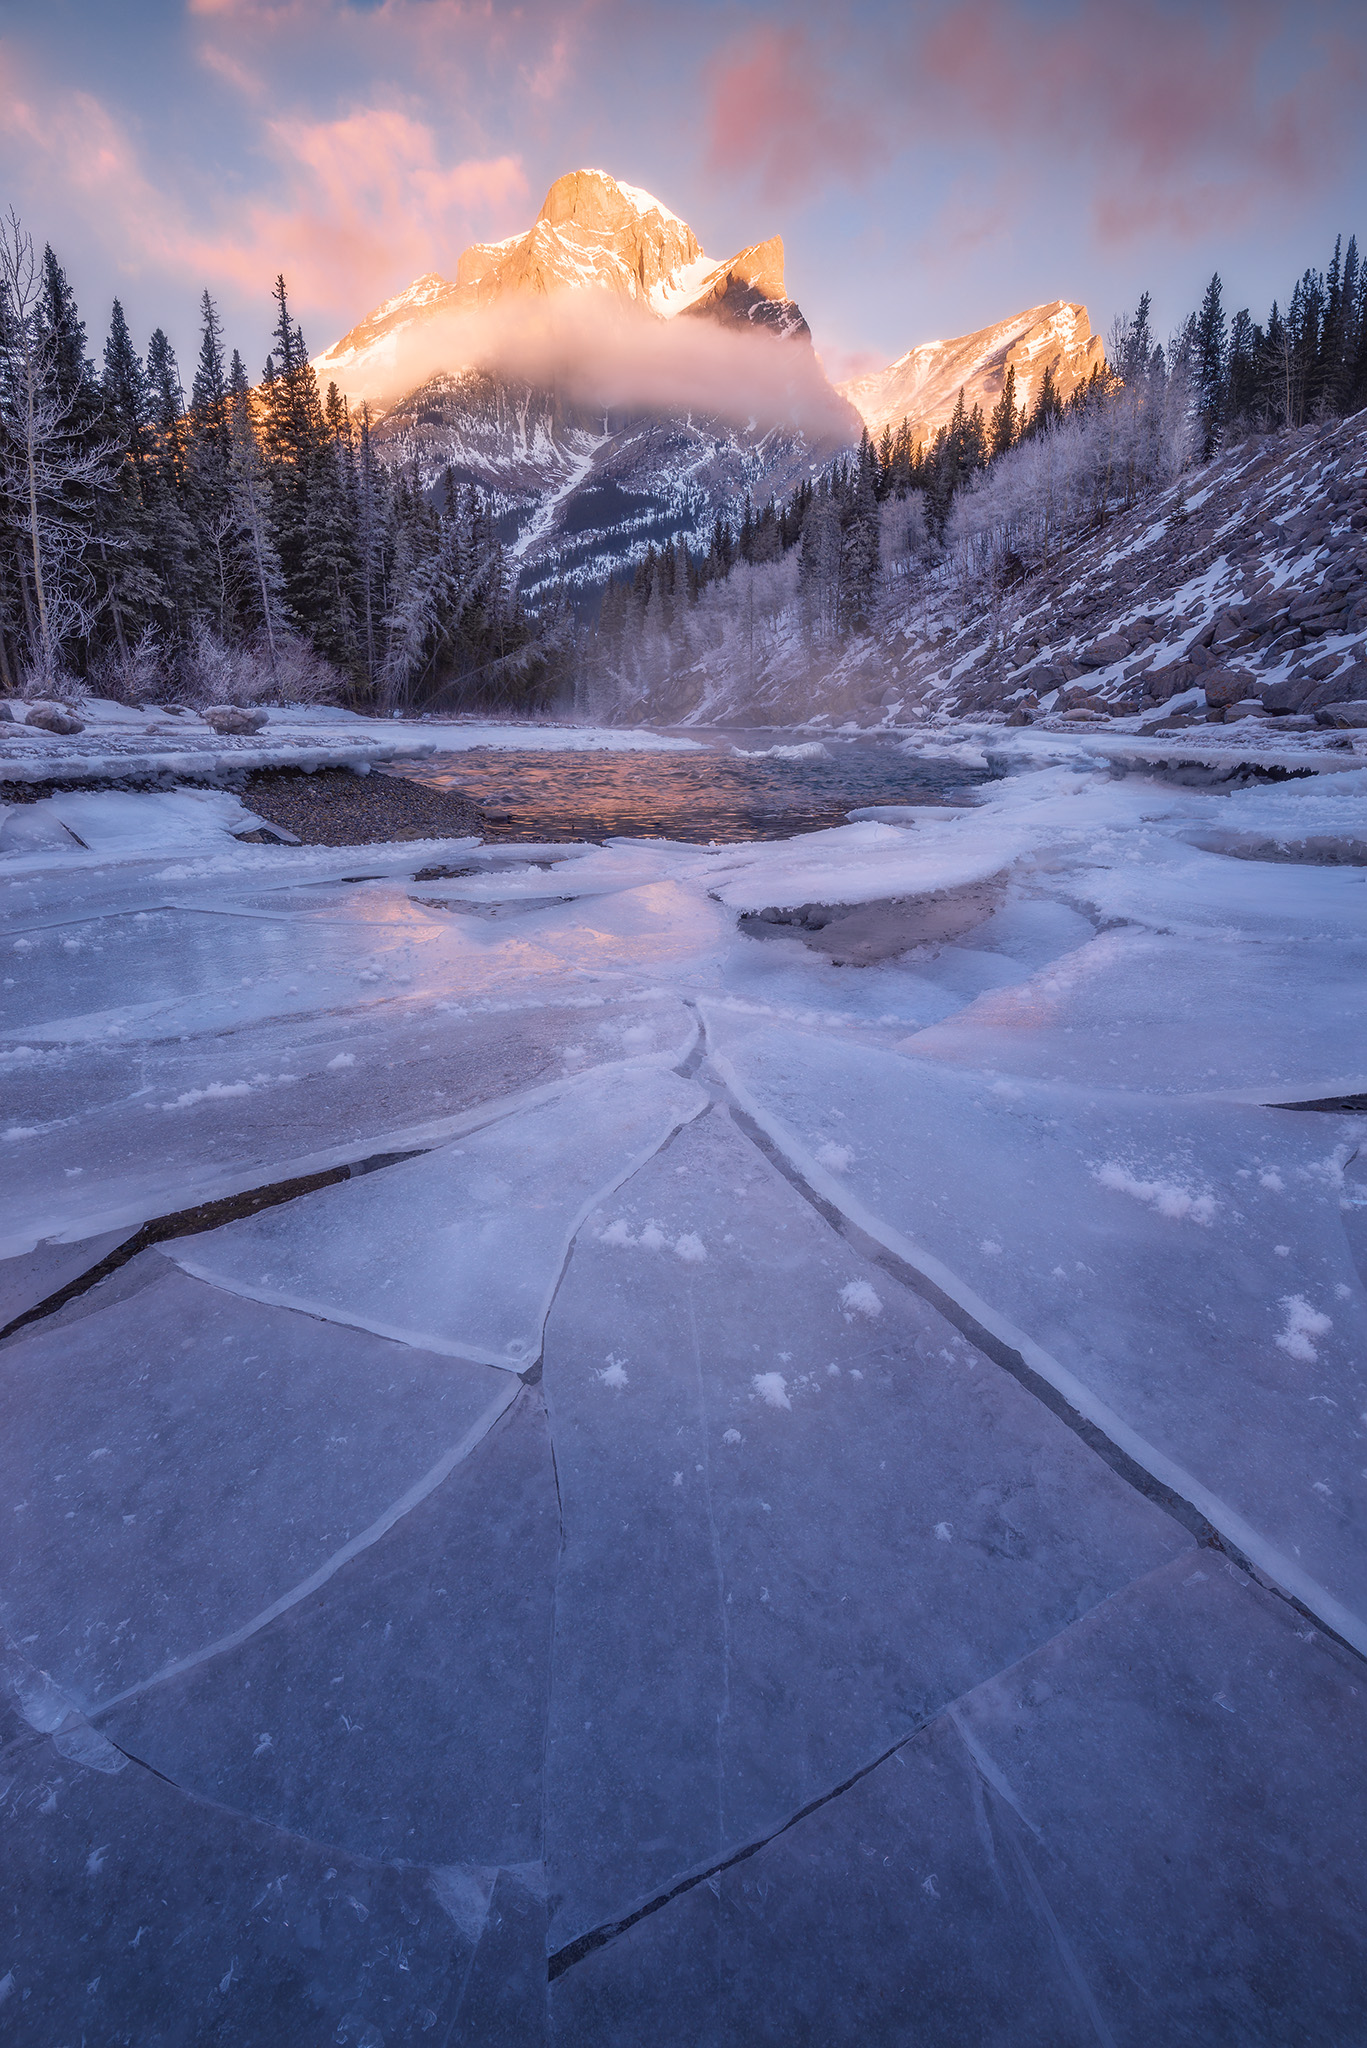 A landscape photograph of Mount Kidd at sunrise in winter in the Canadian Rockies